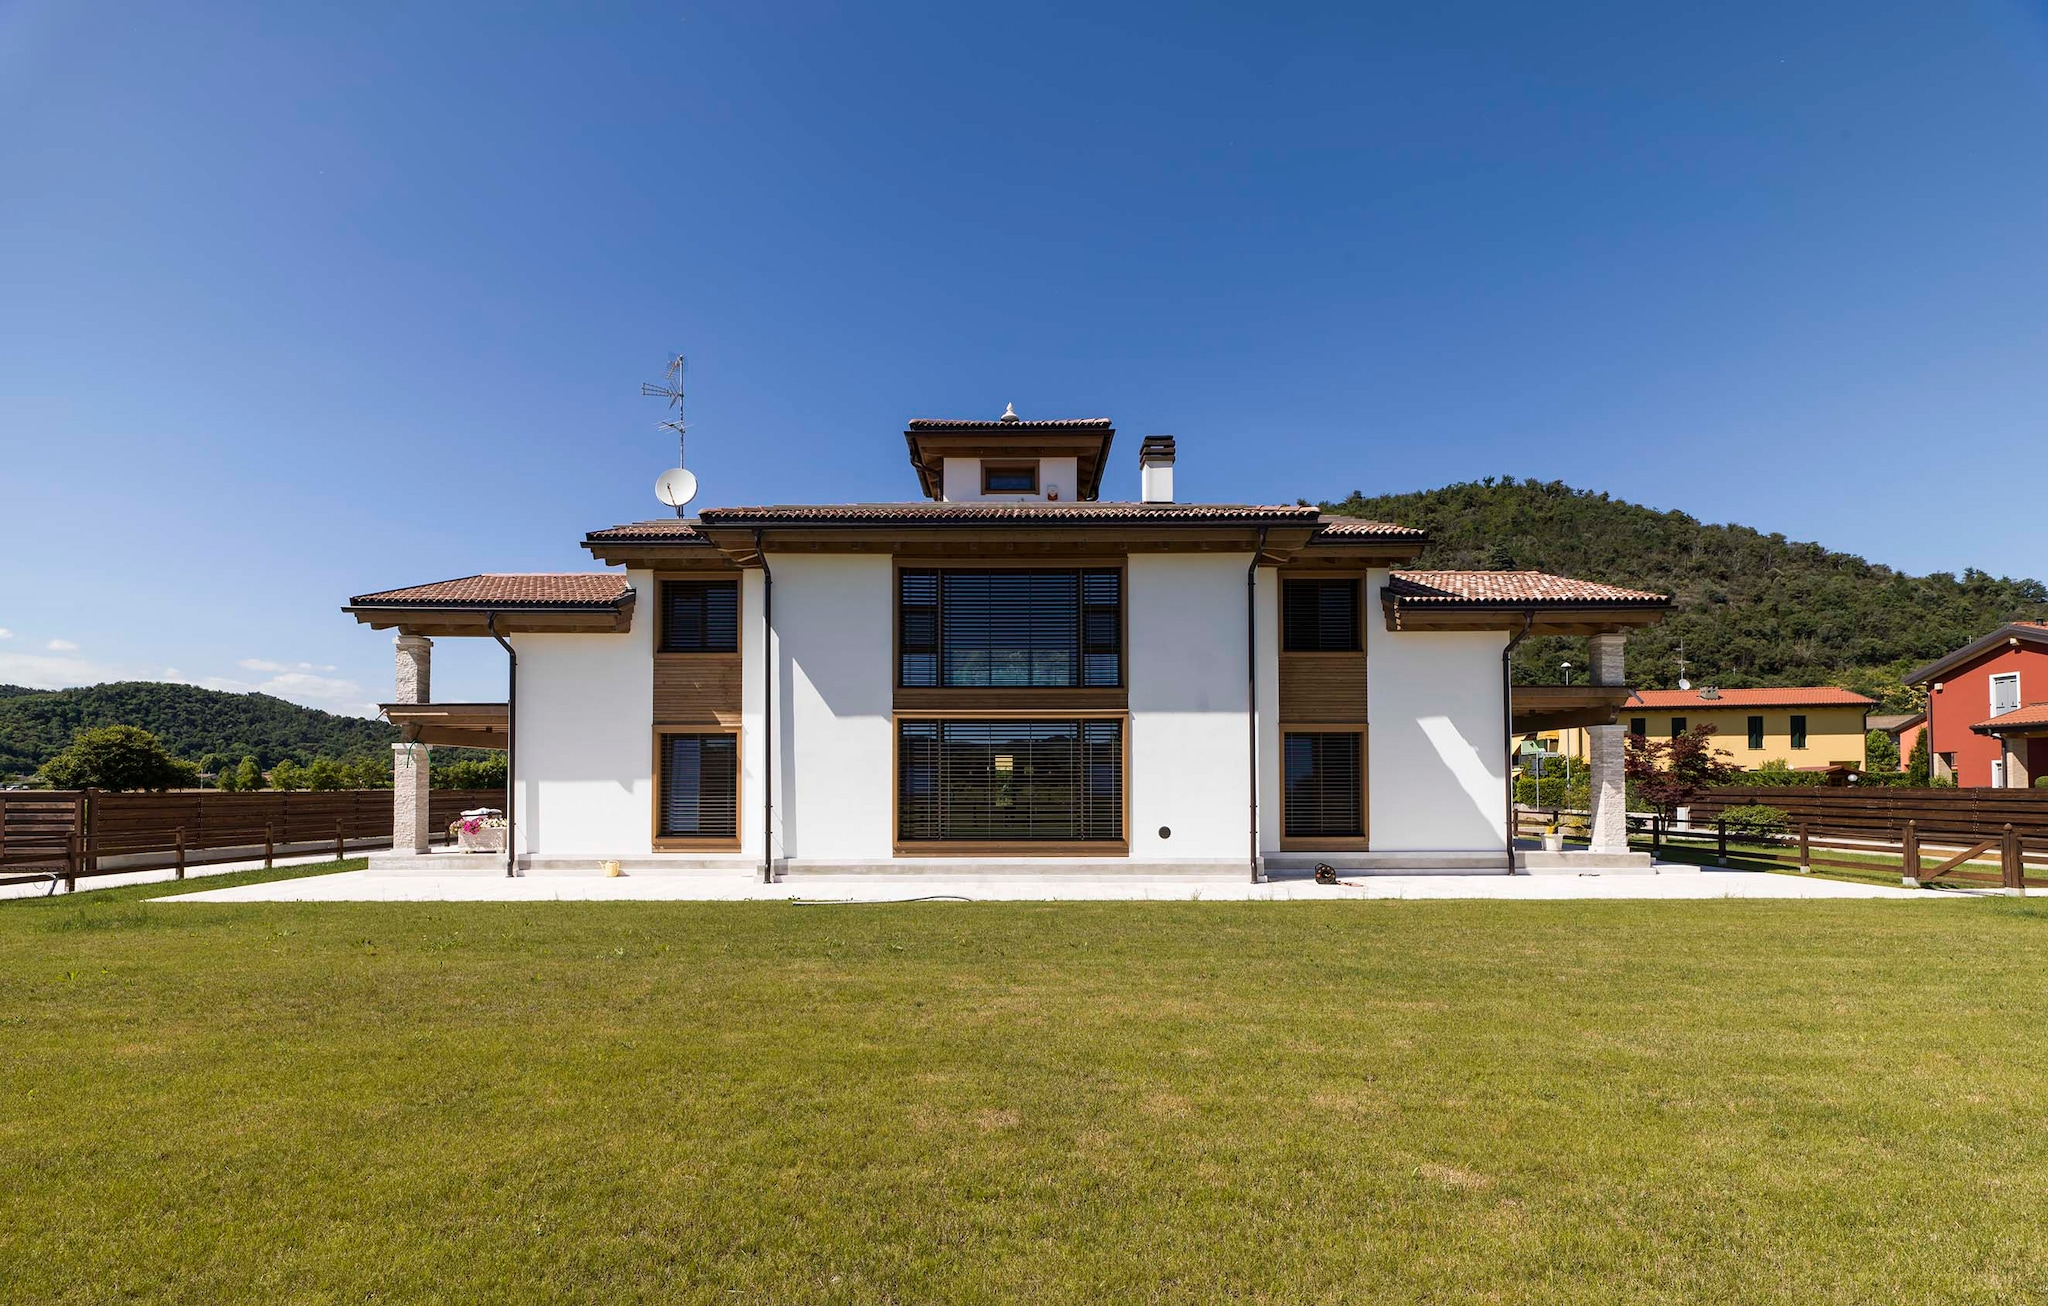 Rubner Haus creates the first Vedic architecture in Italy